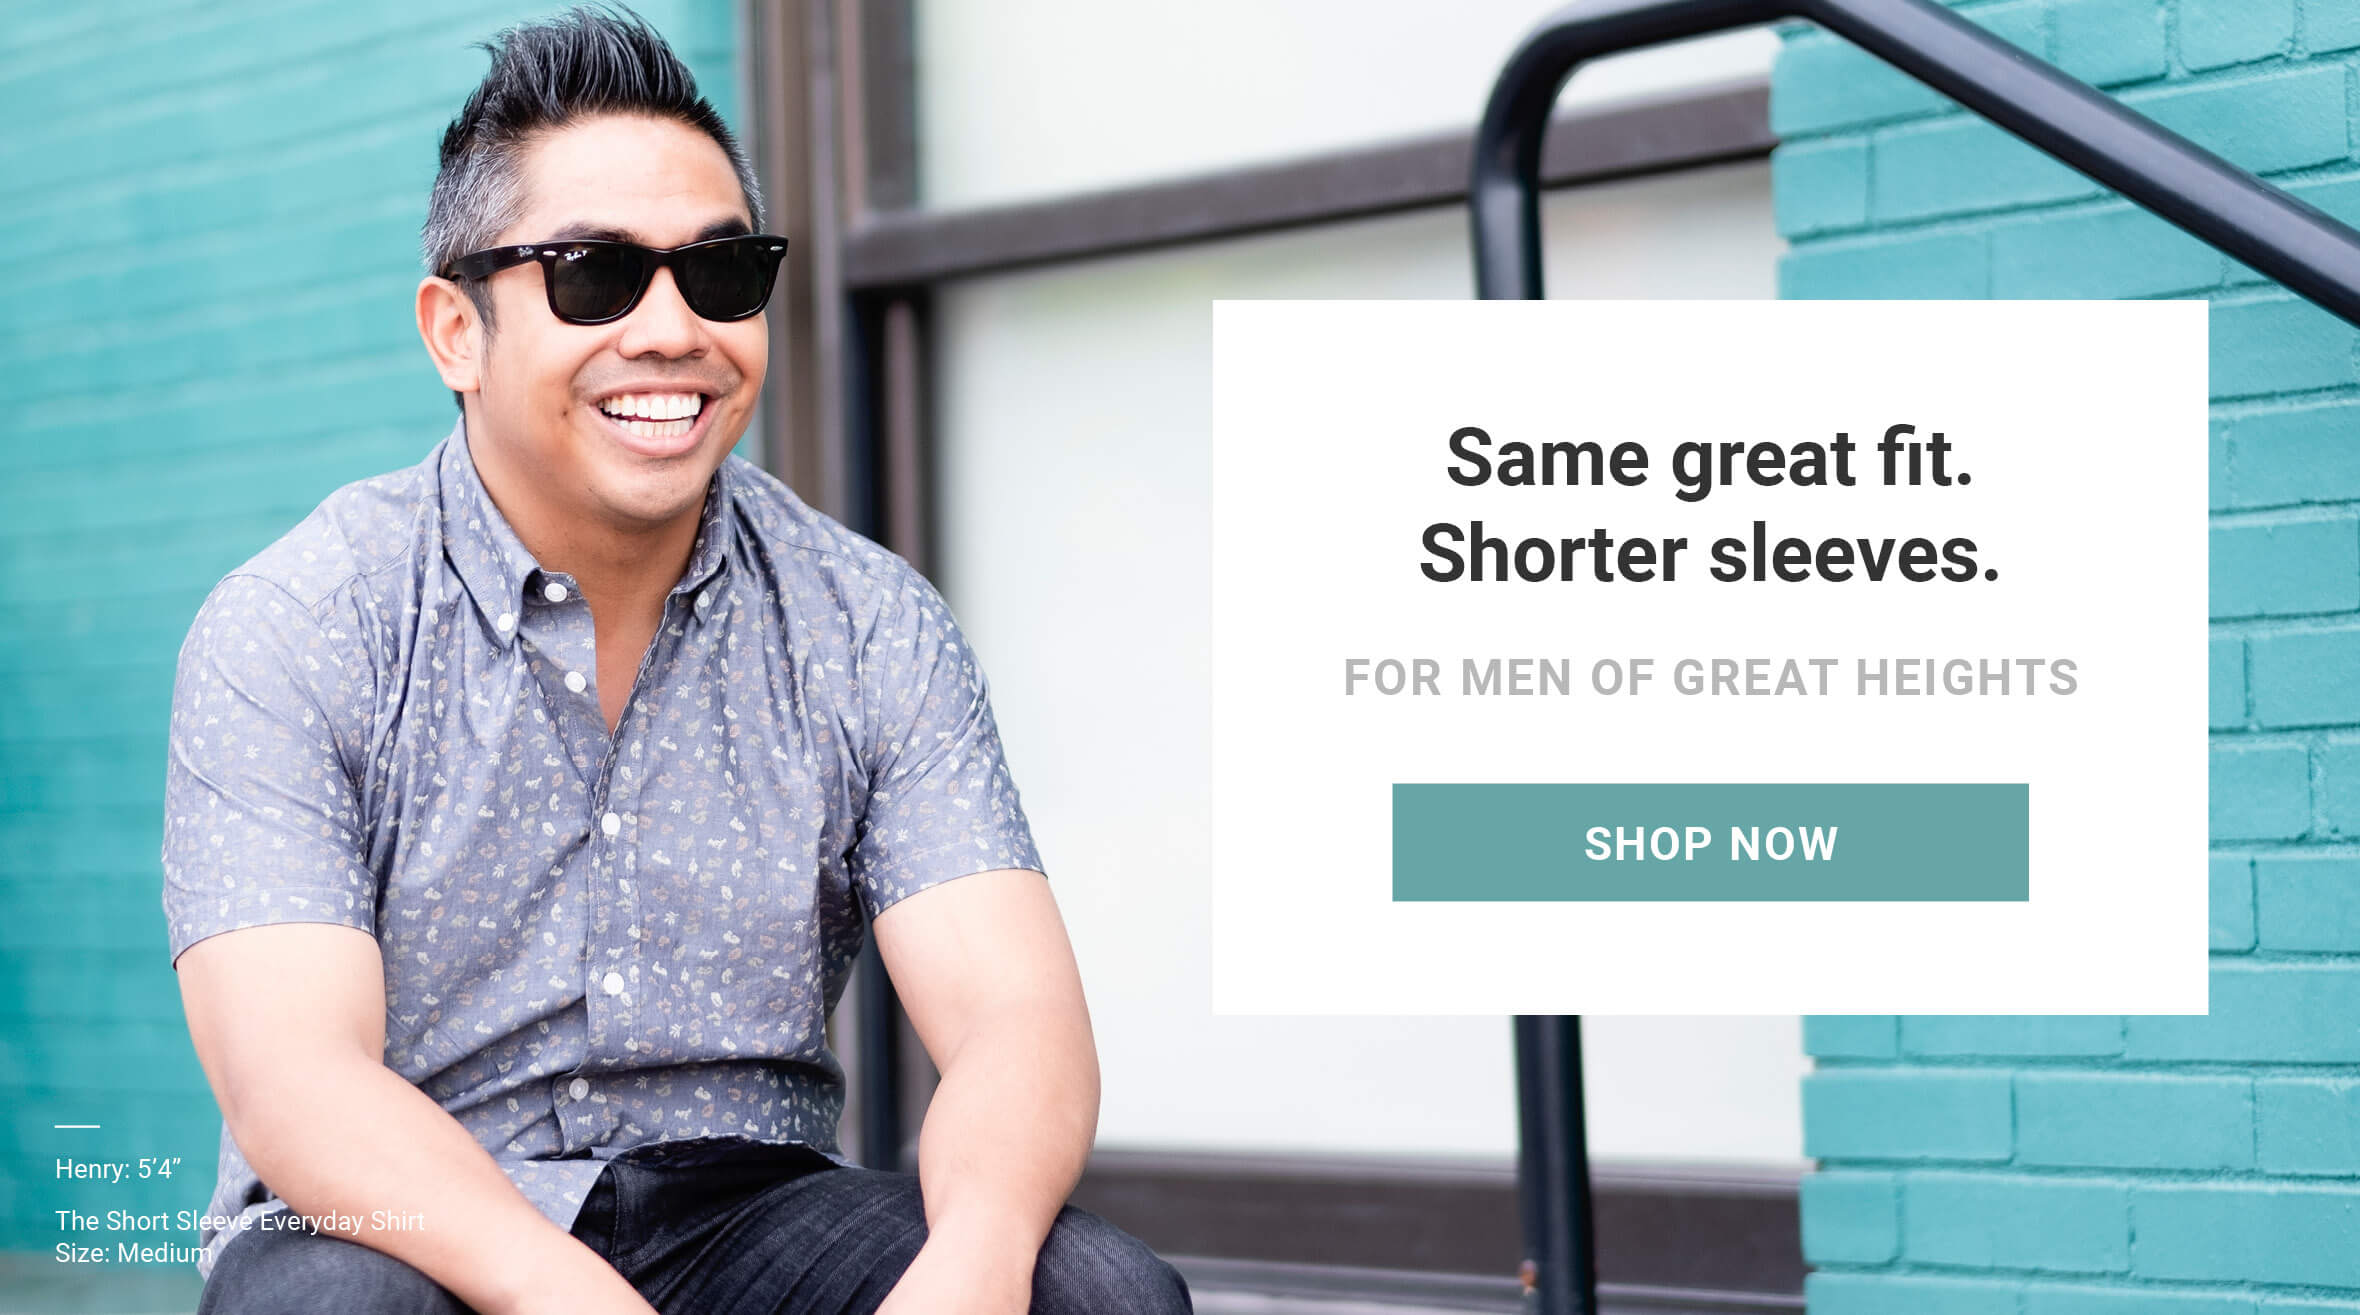 Same great fit. Shorter Sleeves. Made for men of great heights, shorter guy clothes. Shop now. As seen on Shark Tank!